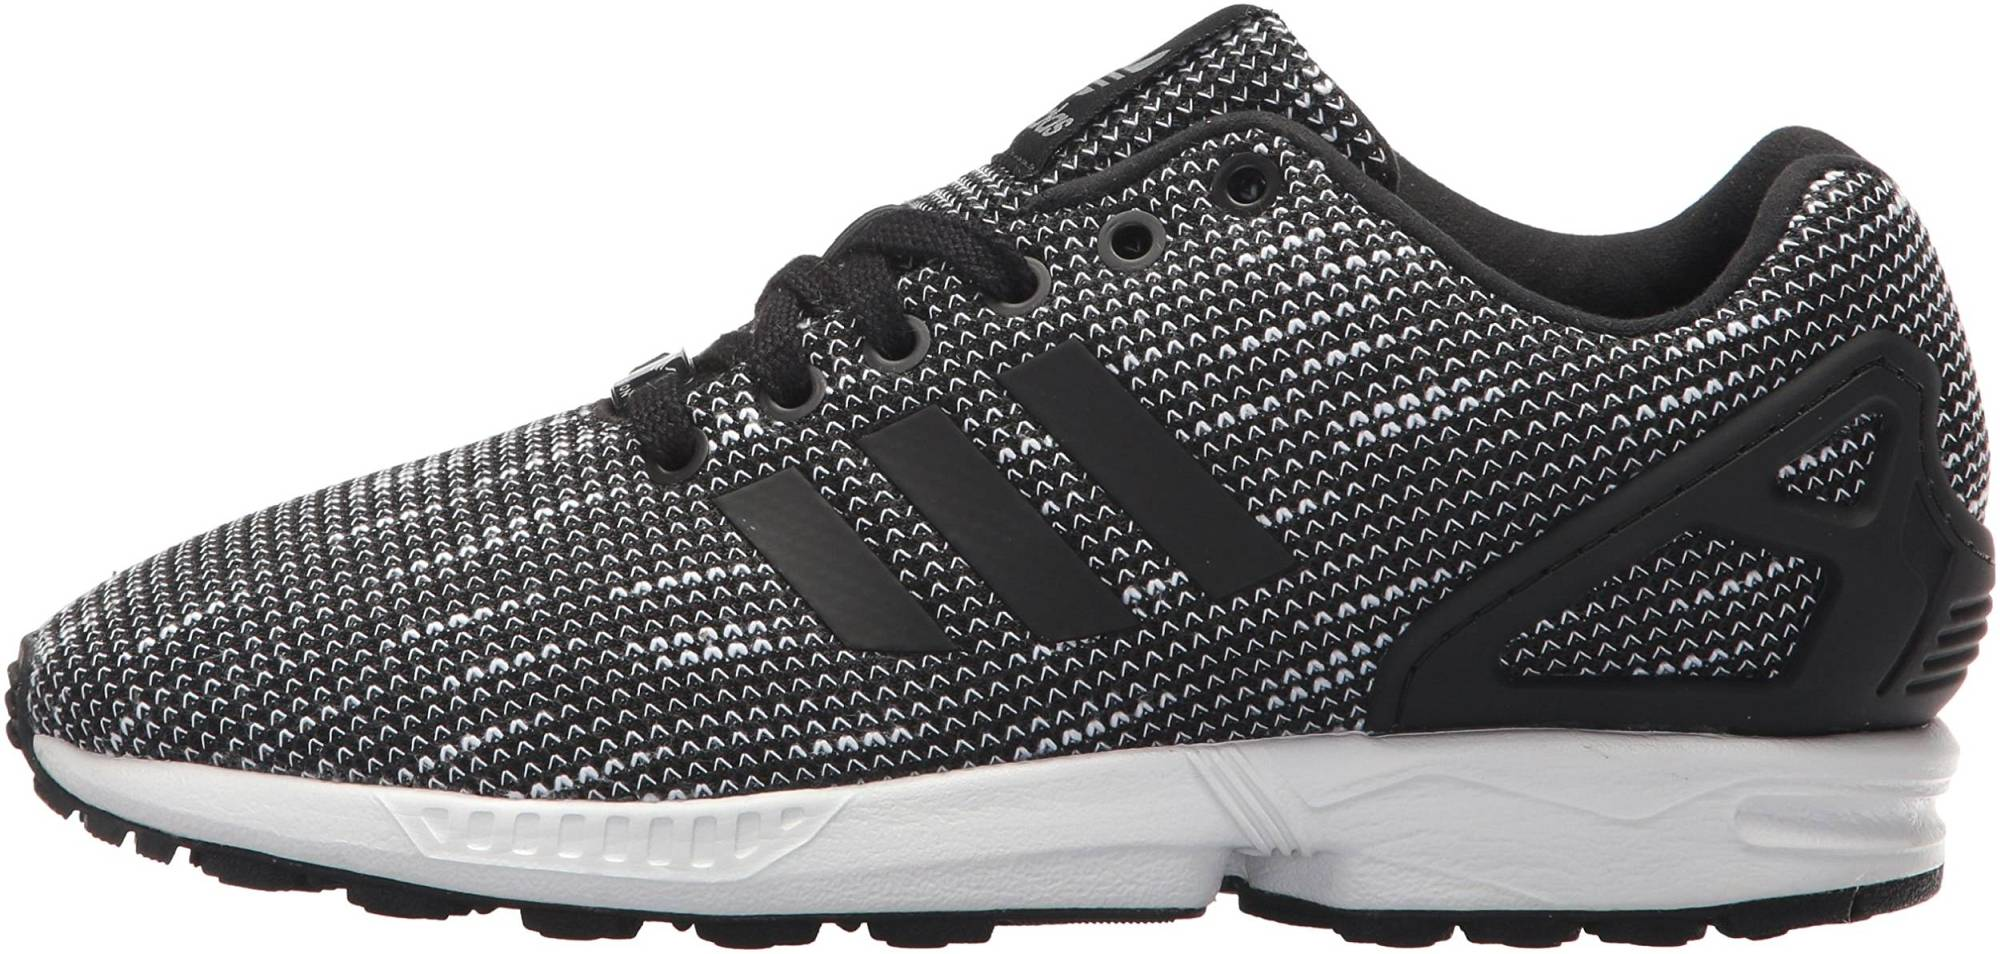 Adidas ZX Flux – Shoes Reviews & Reasons To Buy